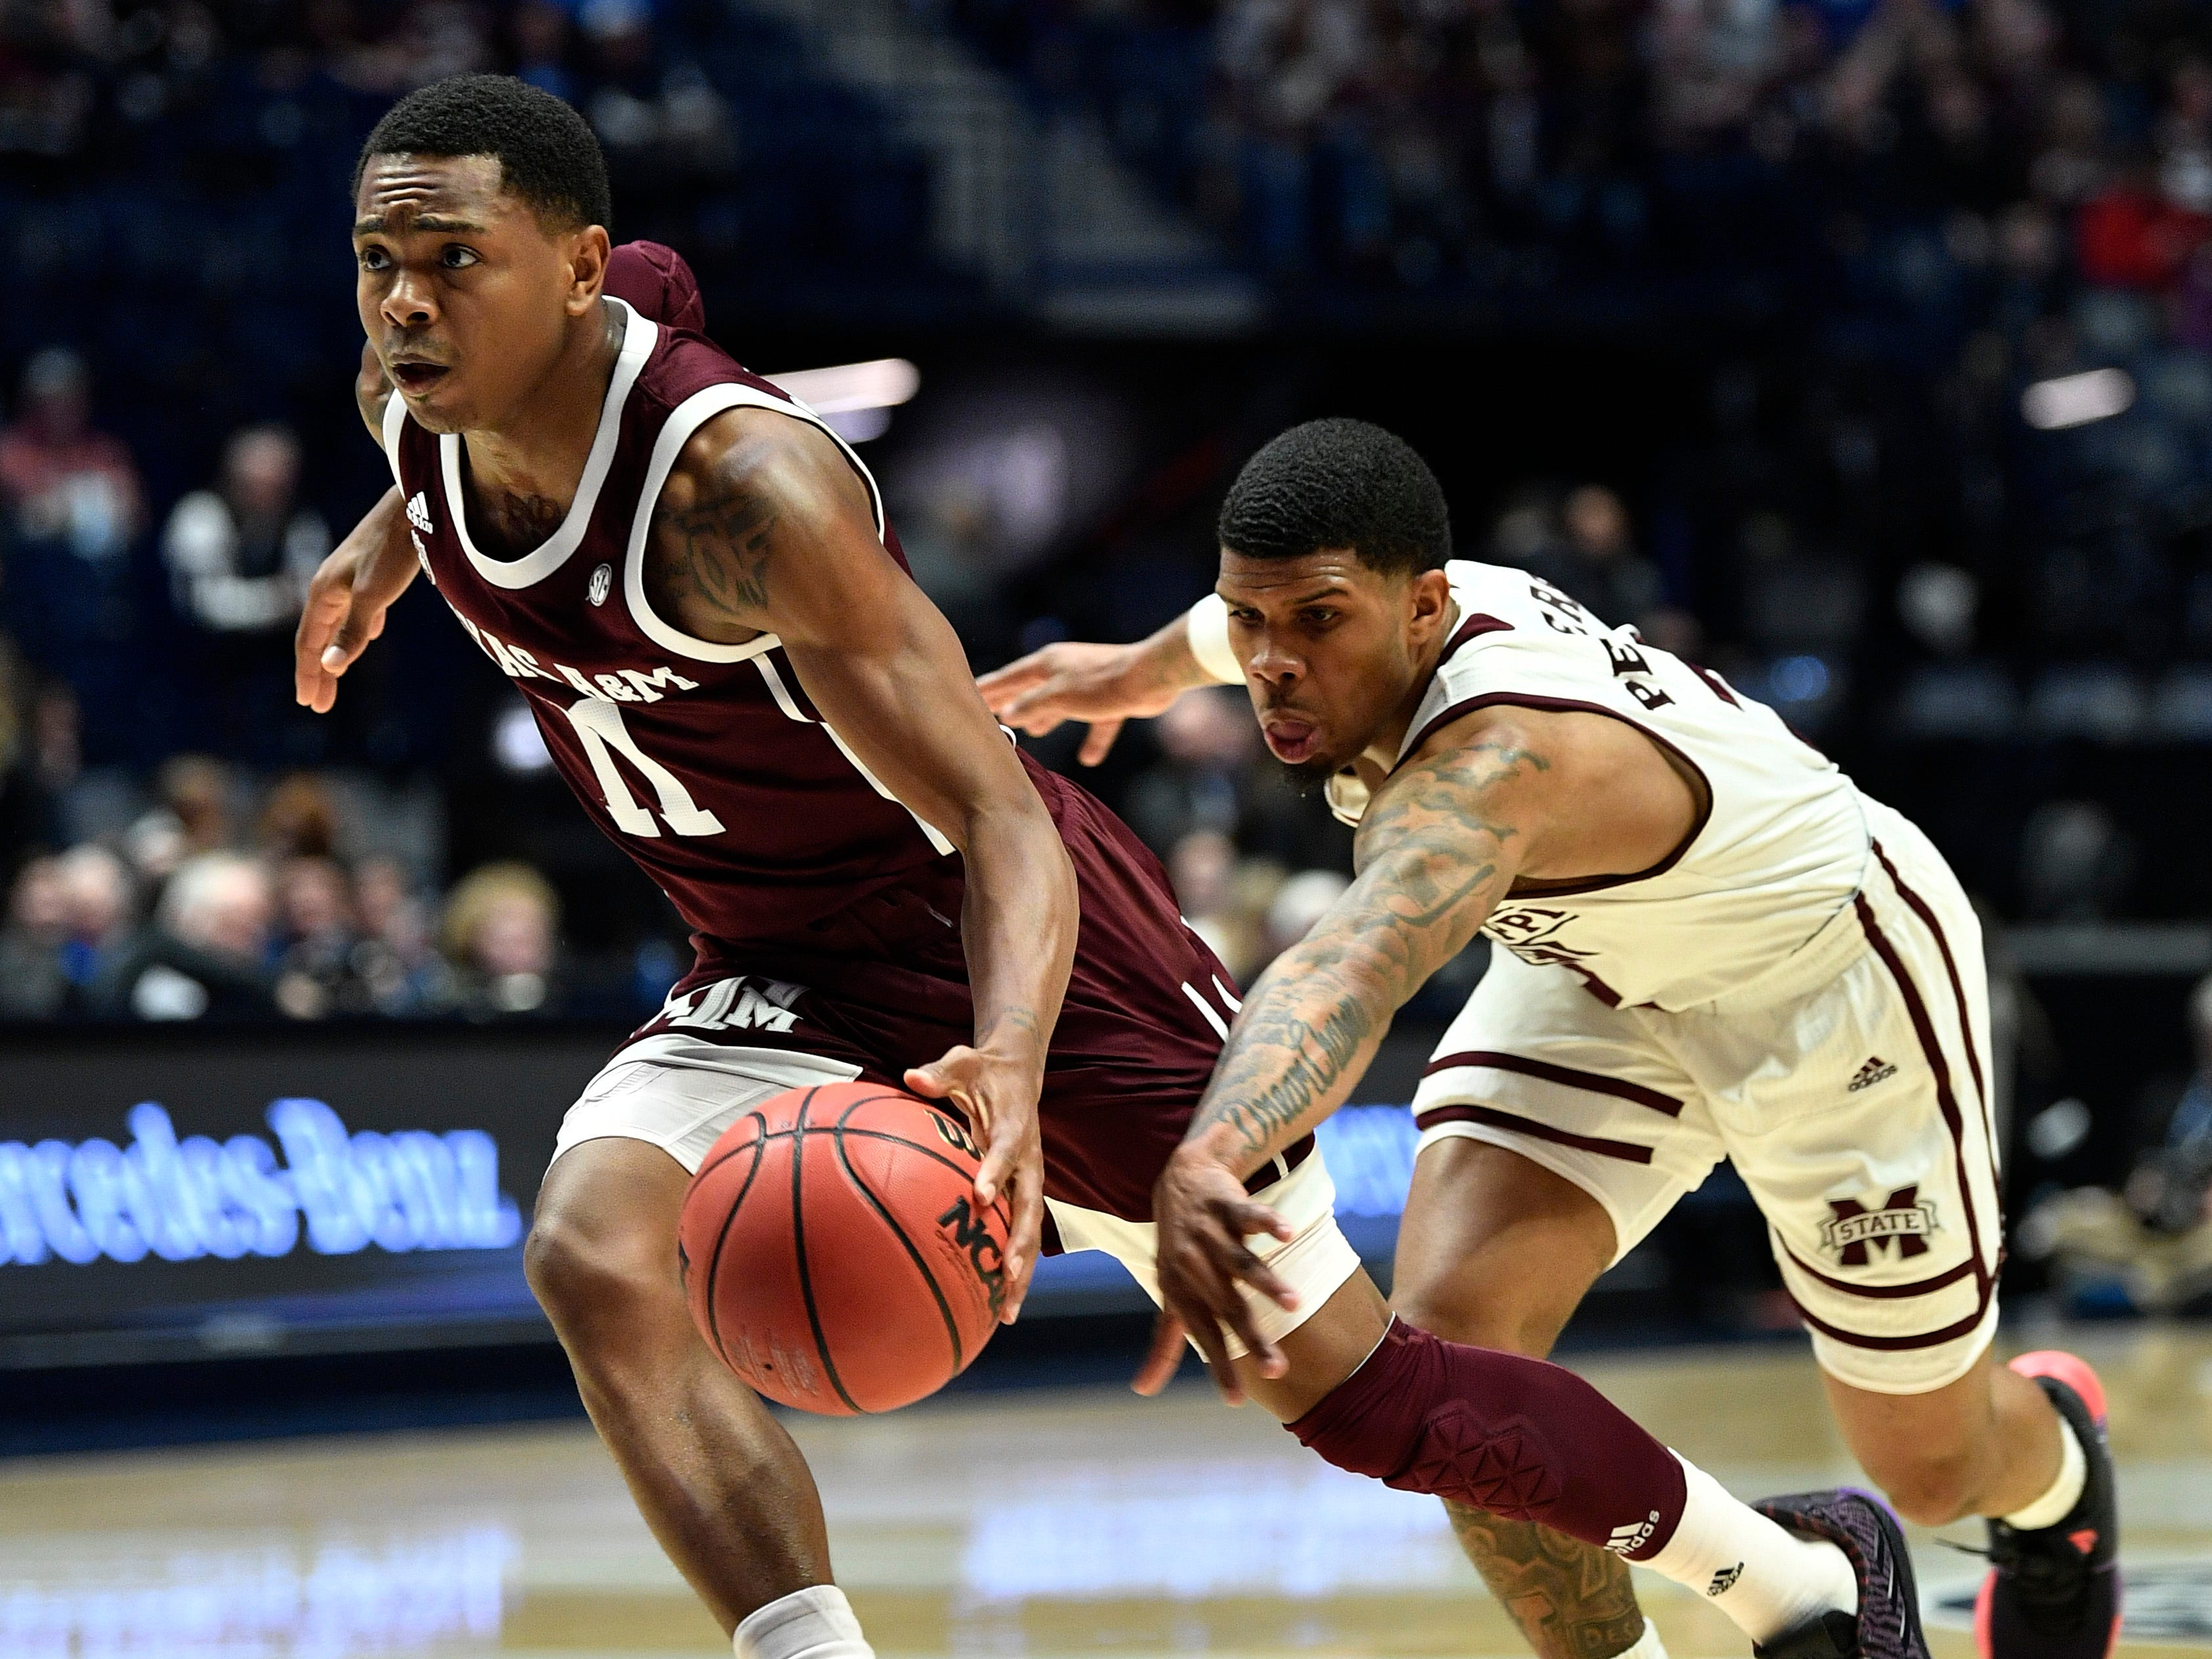 Texas A&M guard Wendell Mitchell (11) gets away from Mississippi State guard Lamar Peters (2) the first half of the SEC Men's Basketball Tournament game at Bridgestone Arena in Nashville, Tenn., Thursday, March 14, 2019.